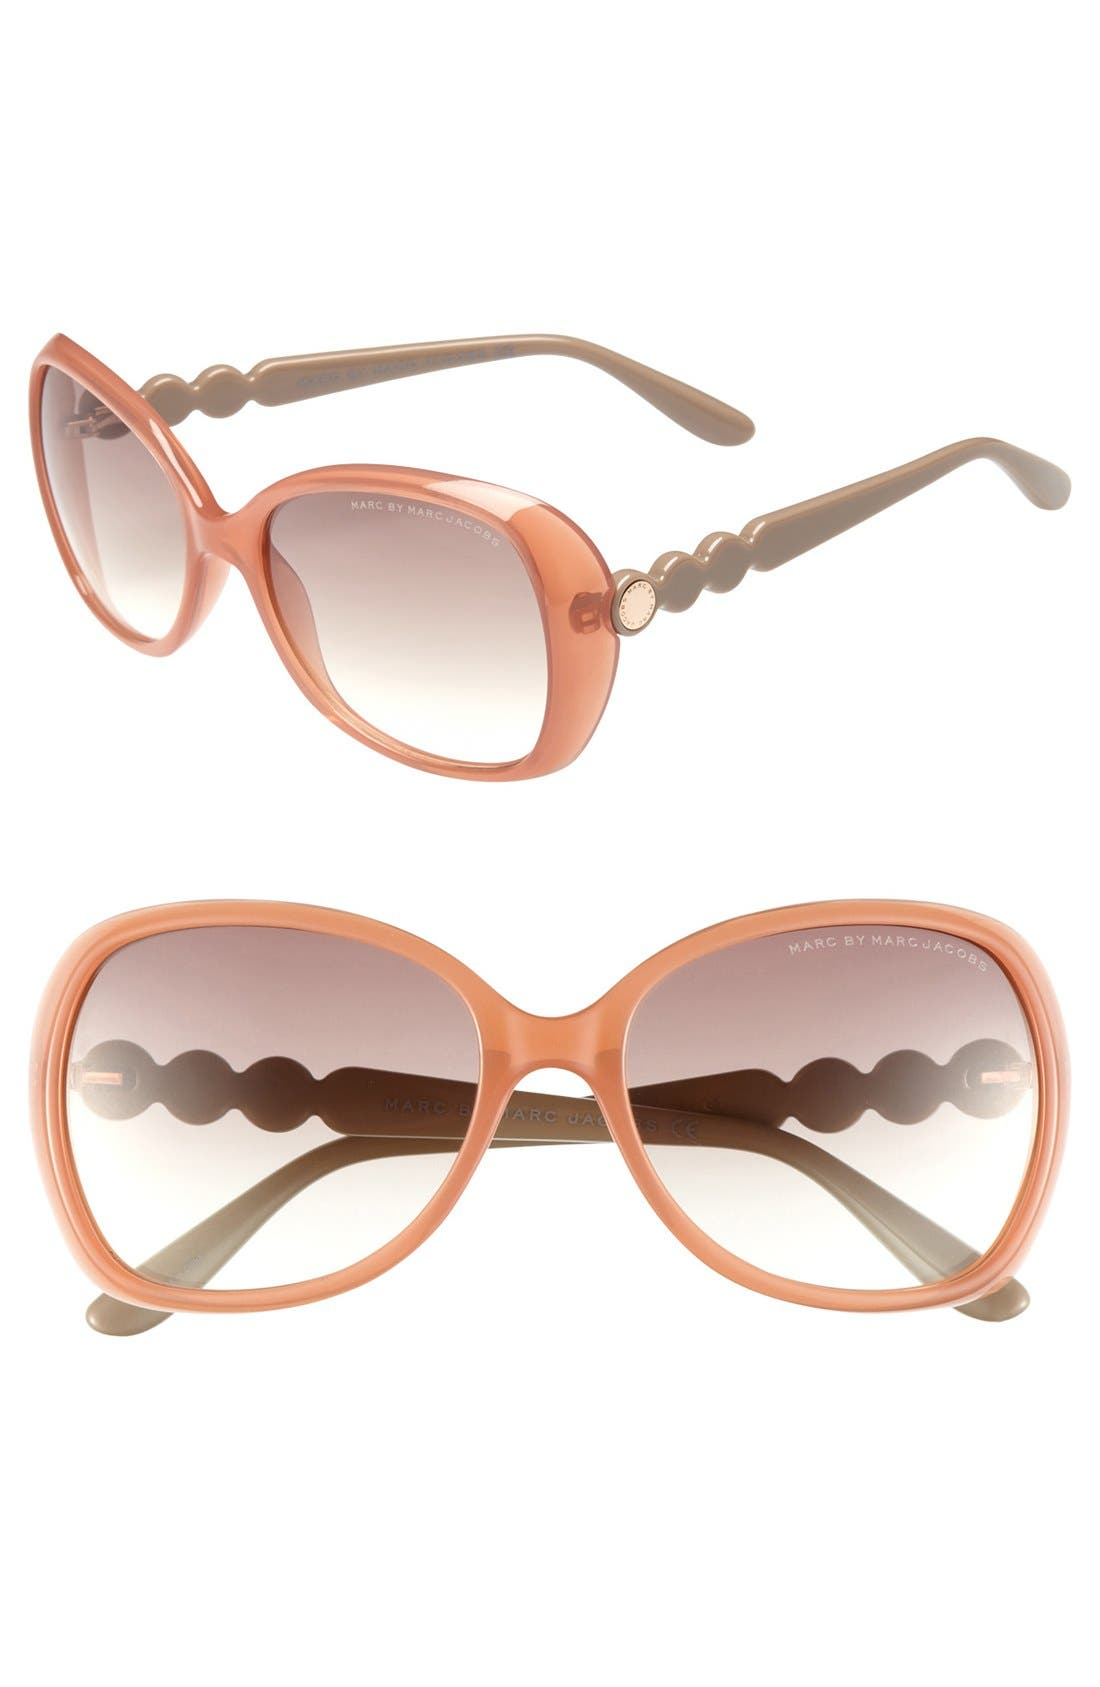 Main Image - MARC BY MARC JACOBS 56mm Oversized Sunglasses